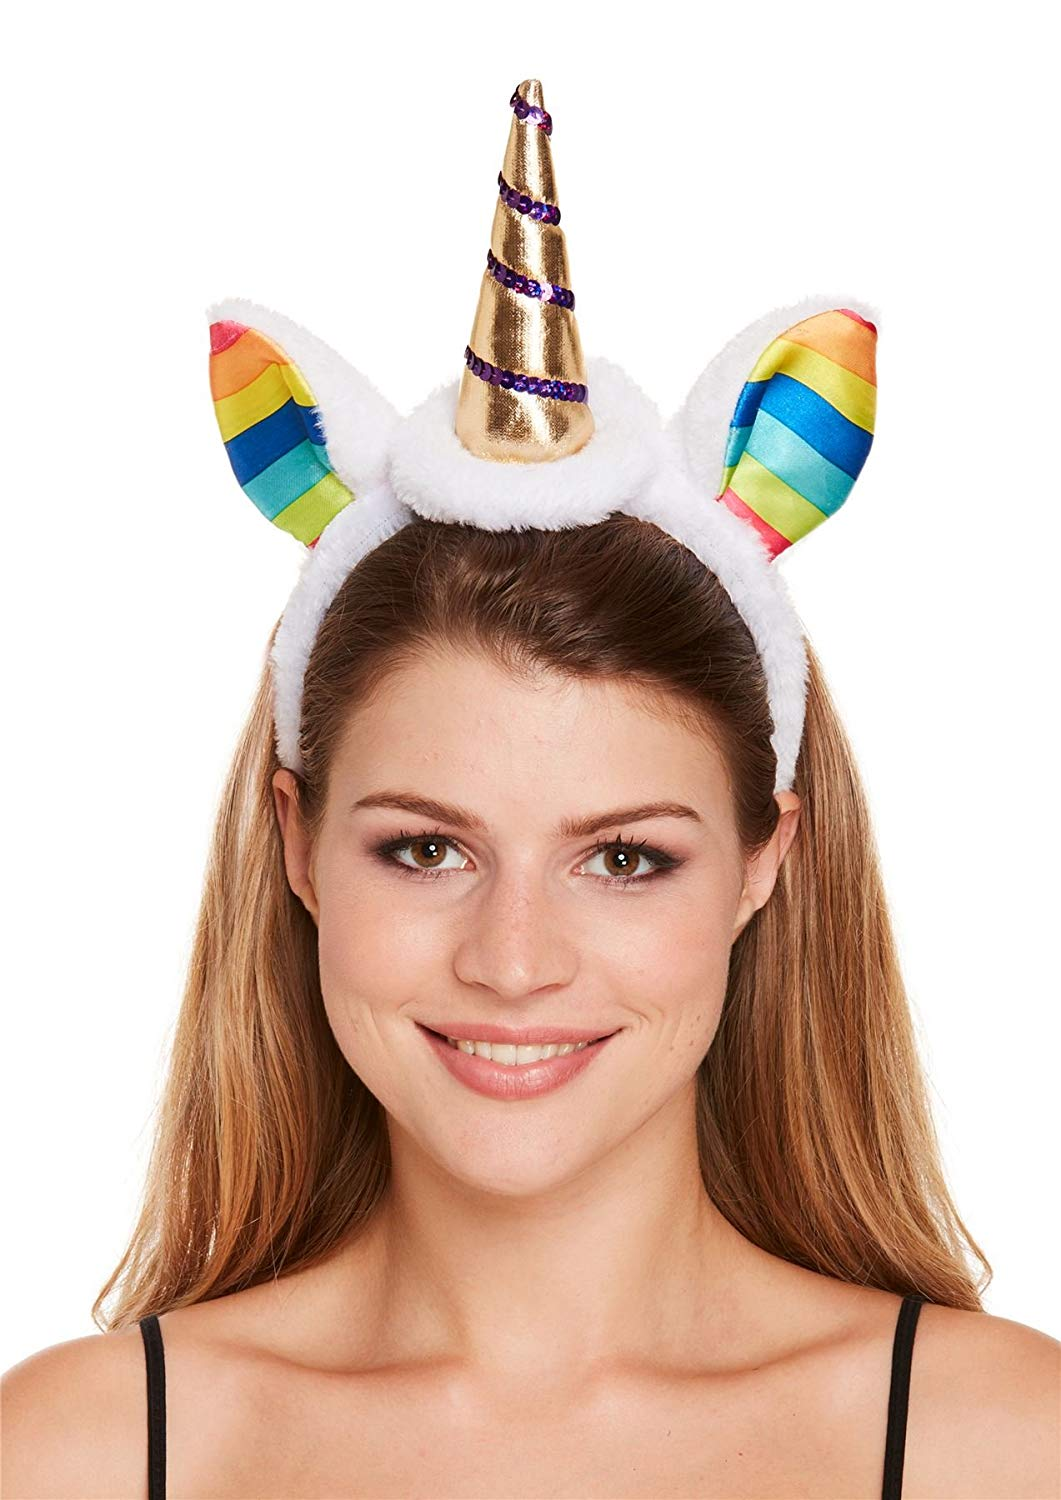 Rimi Hanger Adults Unicorn Horn Headband Childrens Easter Fancy Dress Cosplay Accessory One Size